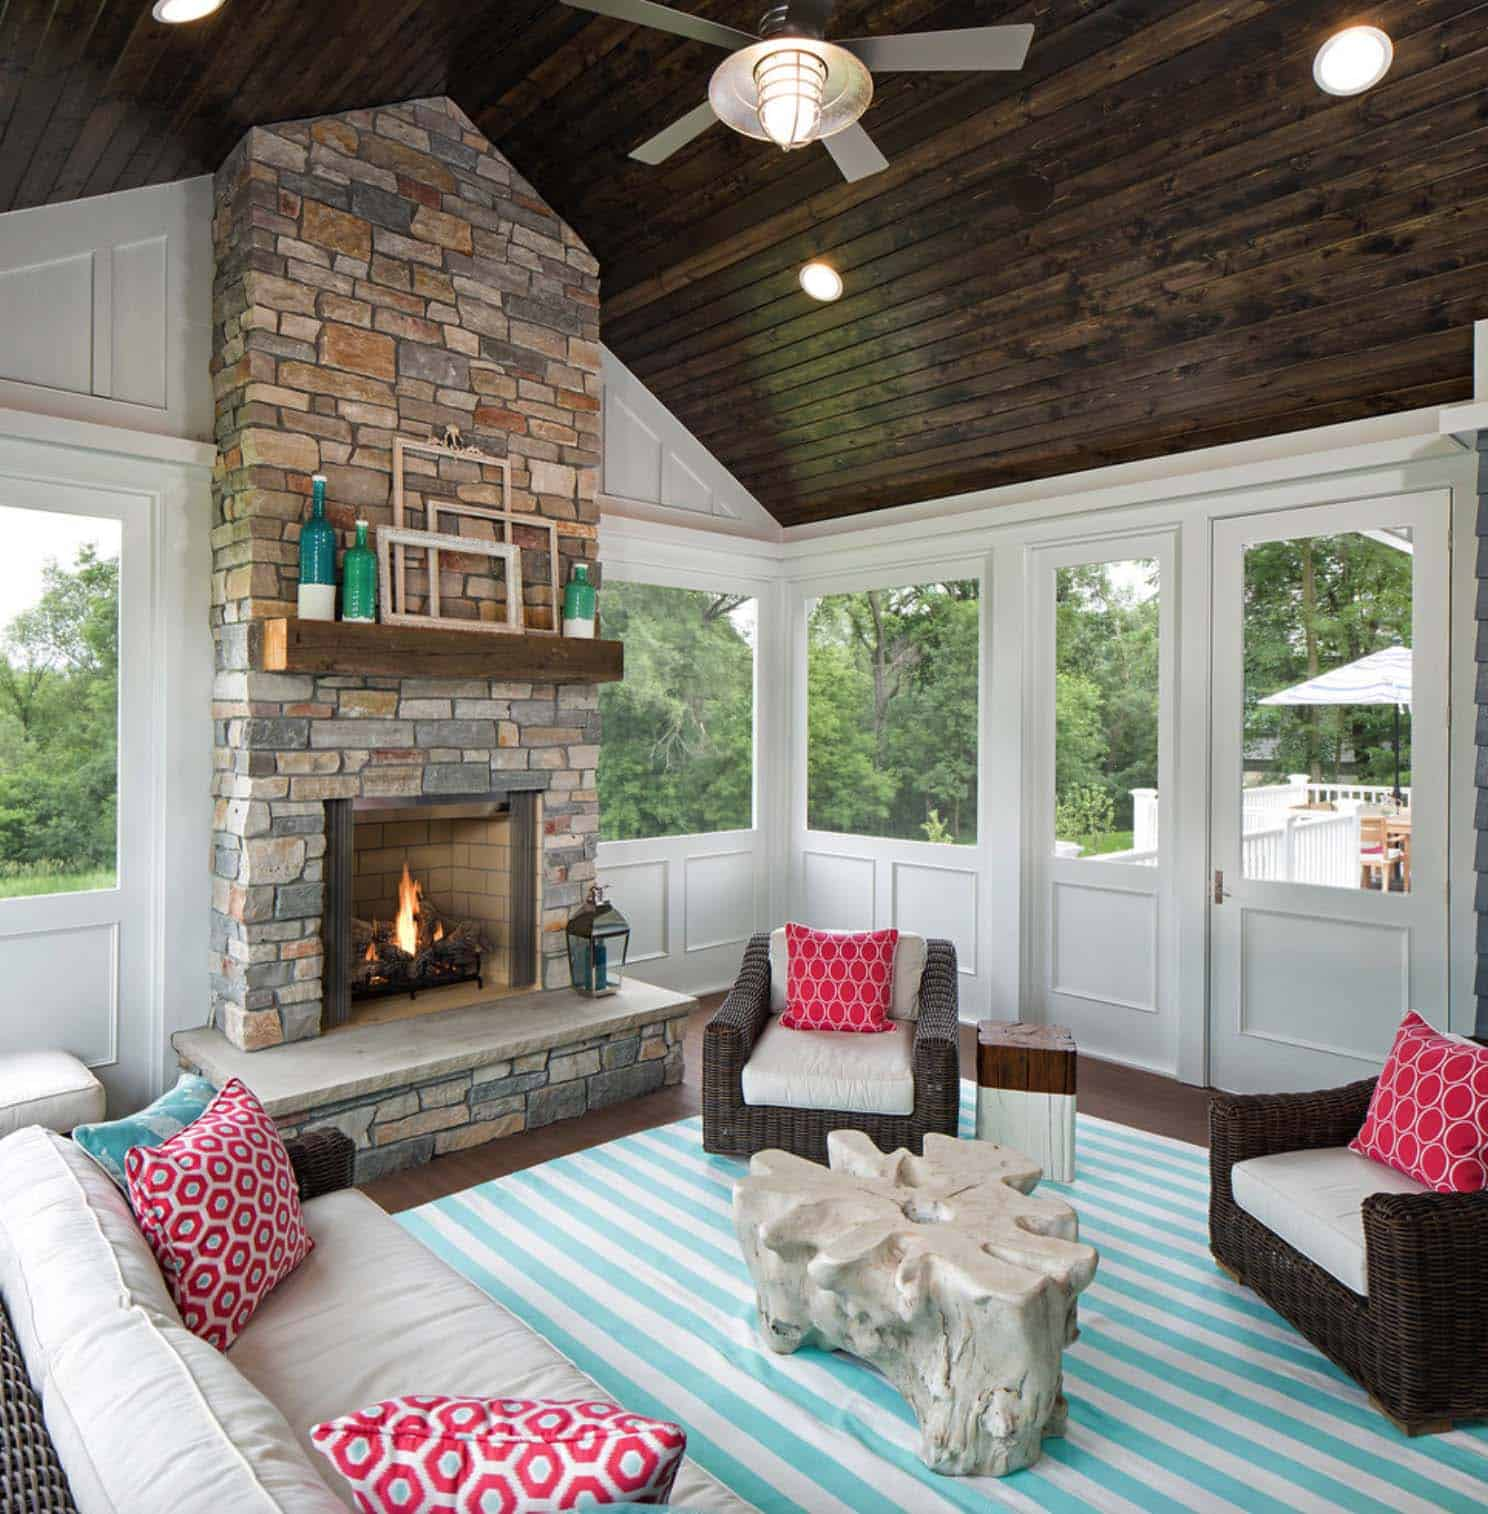 screened porch design ideas 25 1 kindesign - Screened In Porch Design Ideas